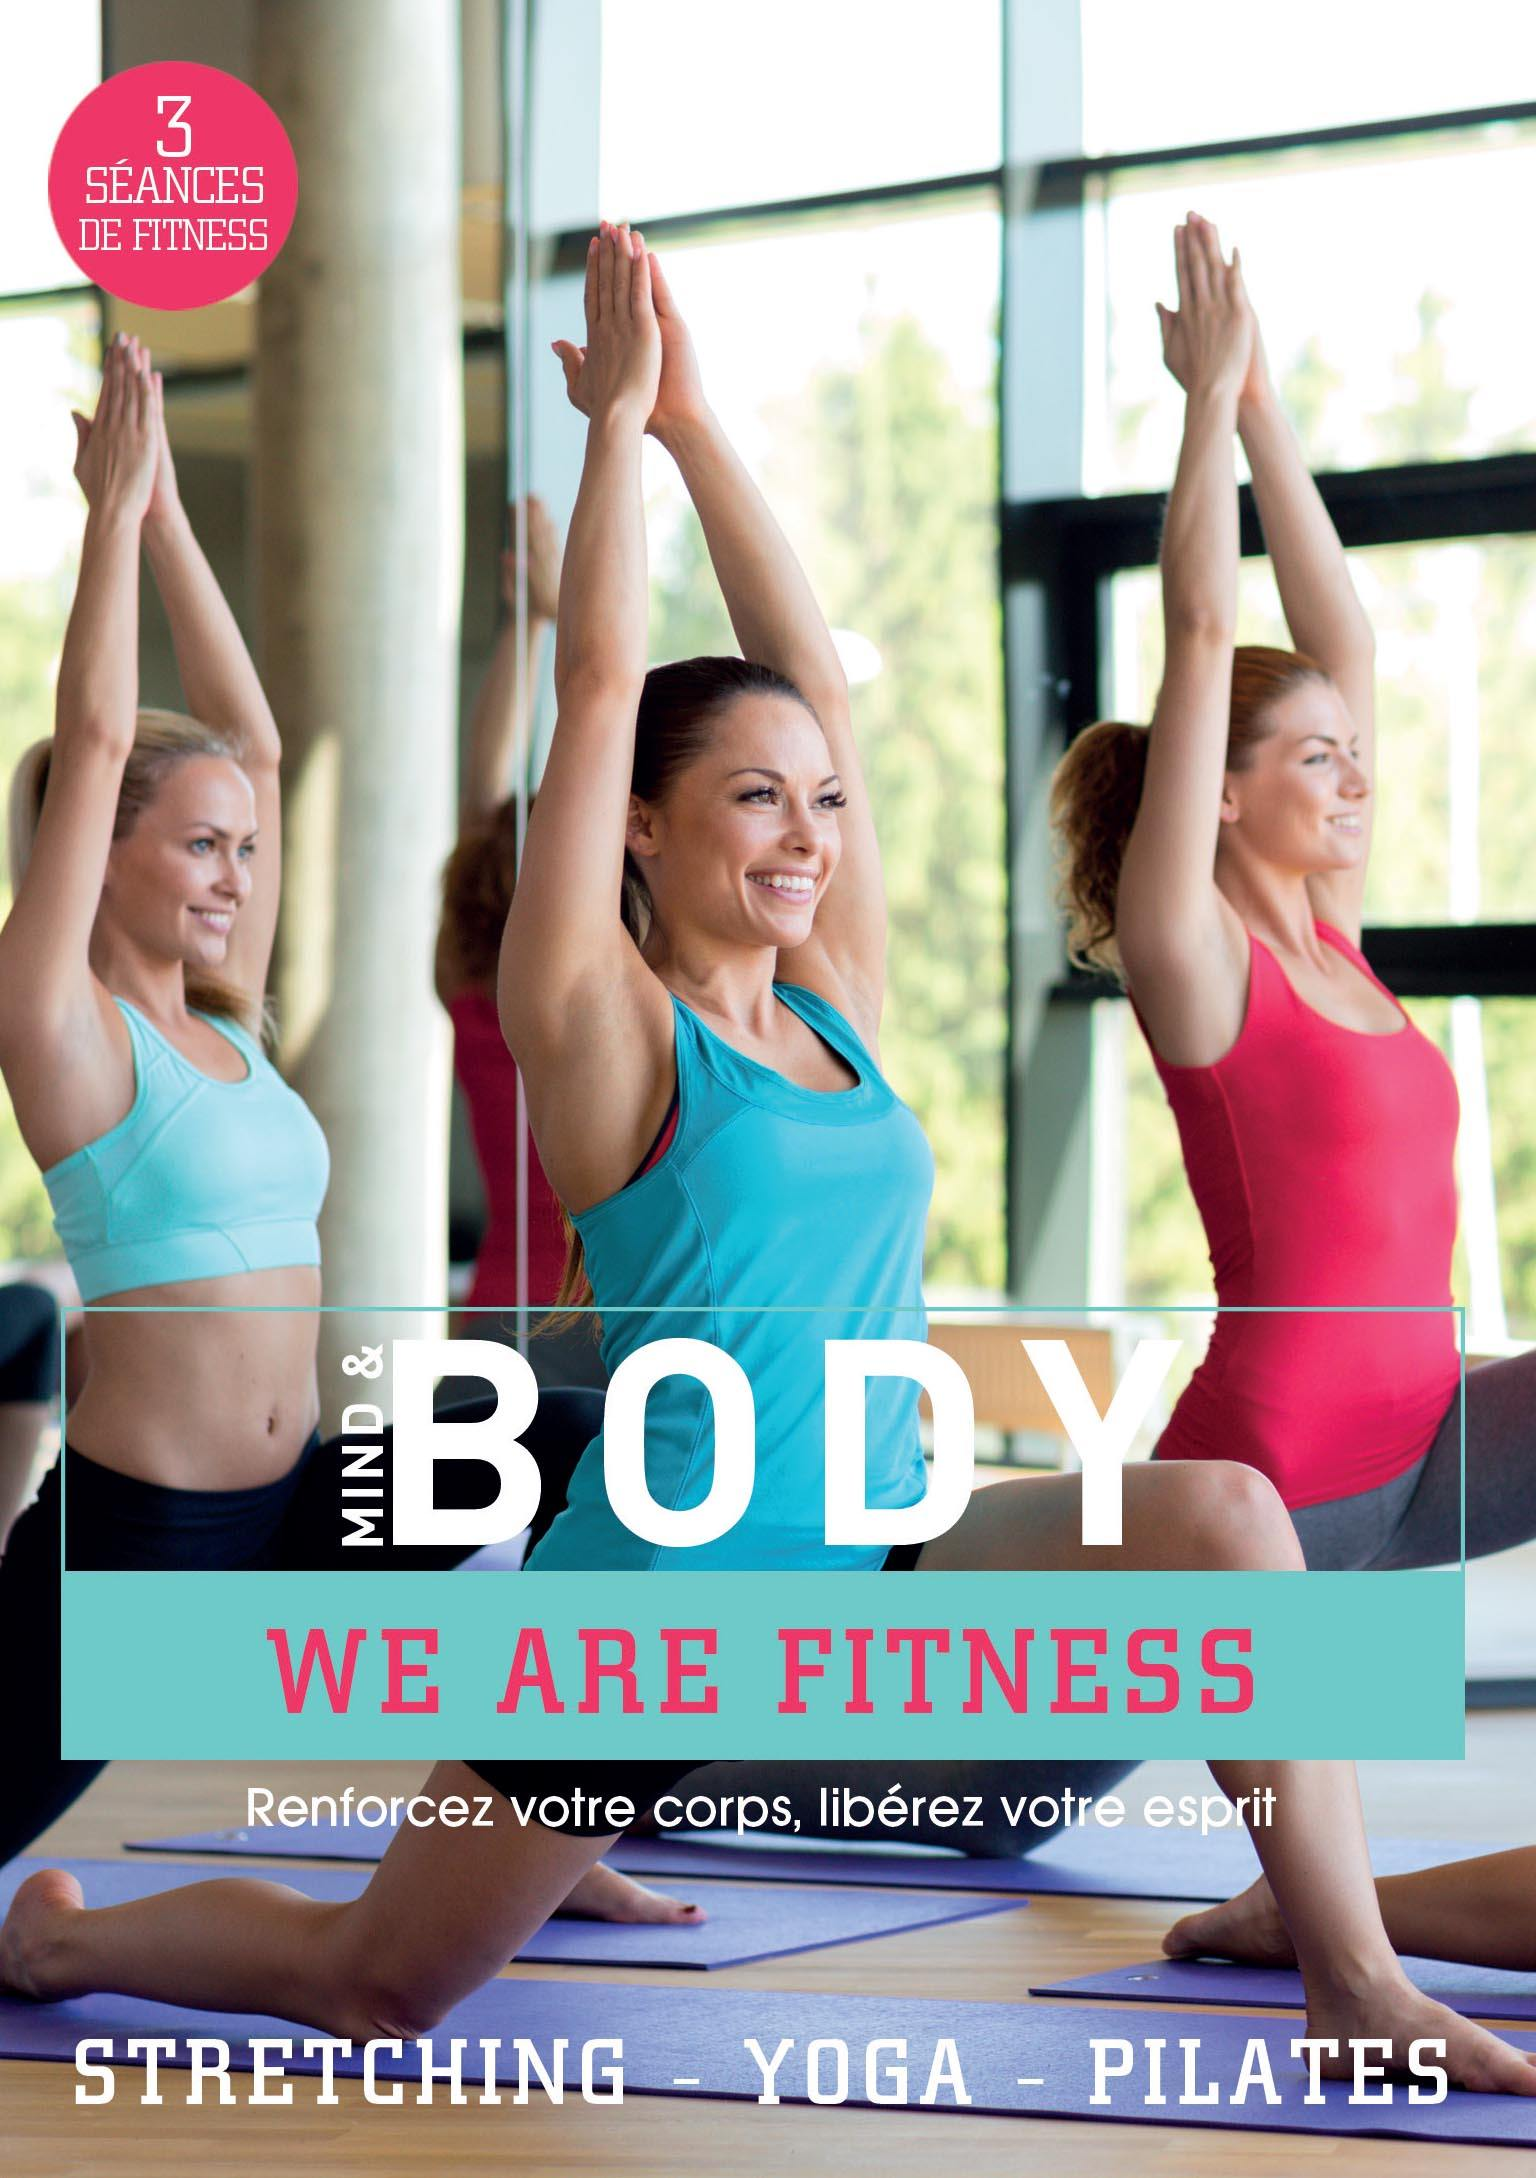 Mind and body - yoga - pilates - stretching - dvd